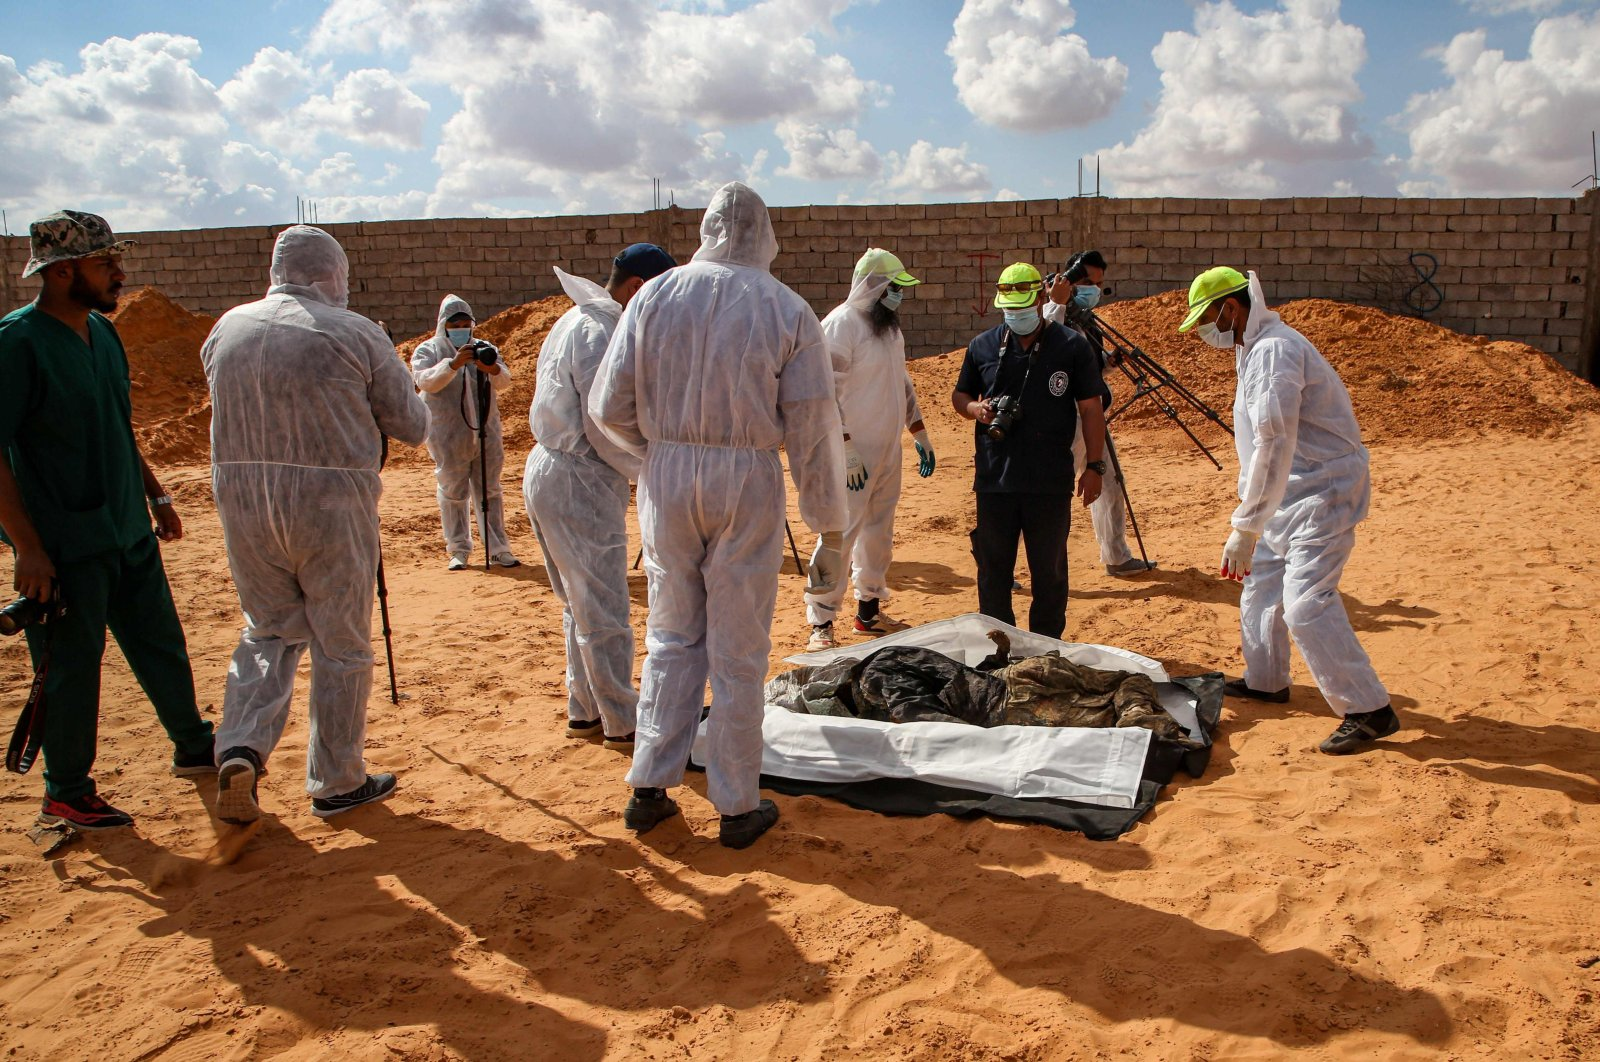 """Members of the public body leading the """"Search and Identification of the Missing,"""" backed by the U.N.-recognised Government of National Accord (GNA), gather around an unearthed body at a mass grave site in western Libya's Tarhuna region on Nov. 7, 2020."""